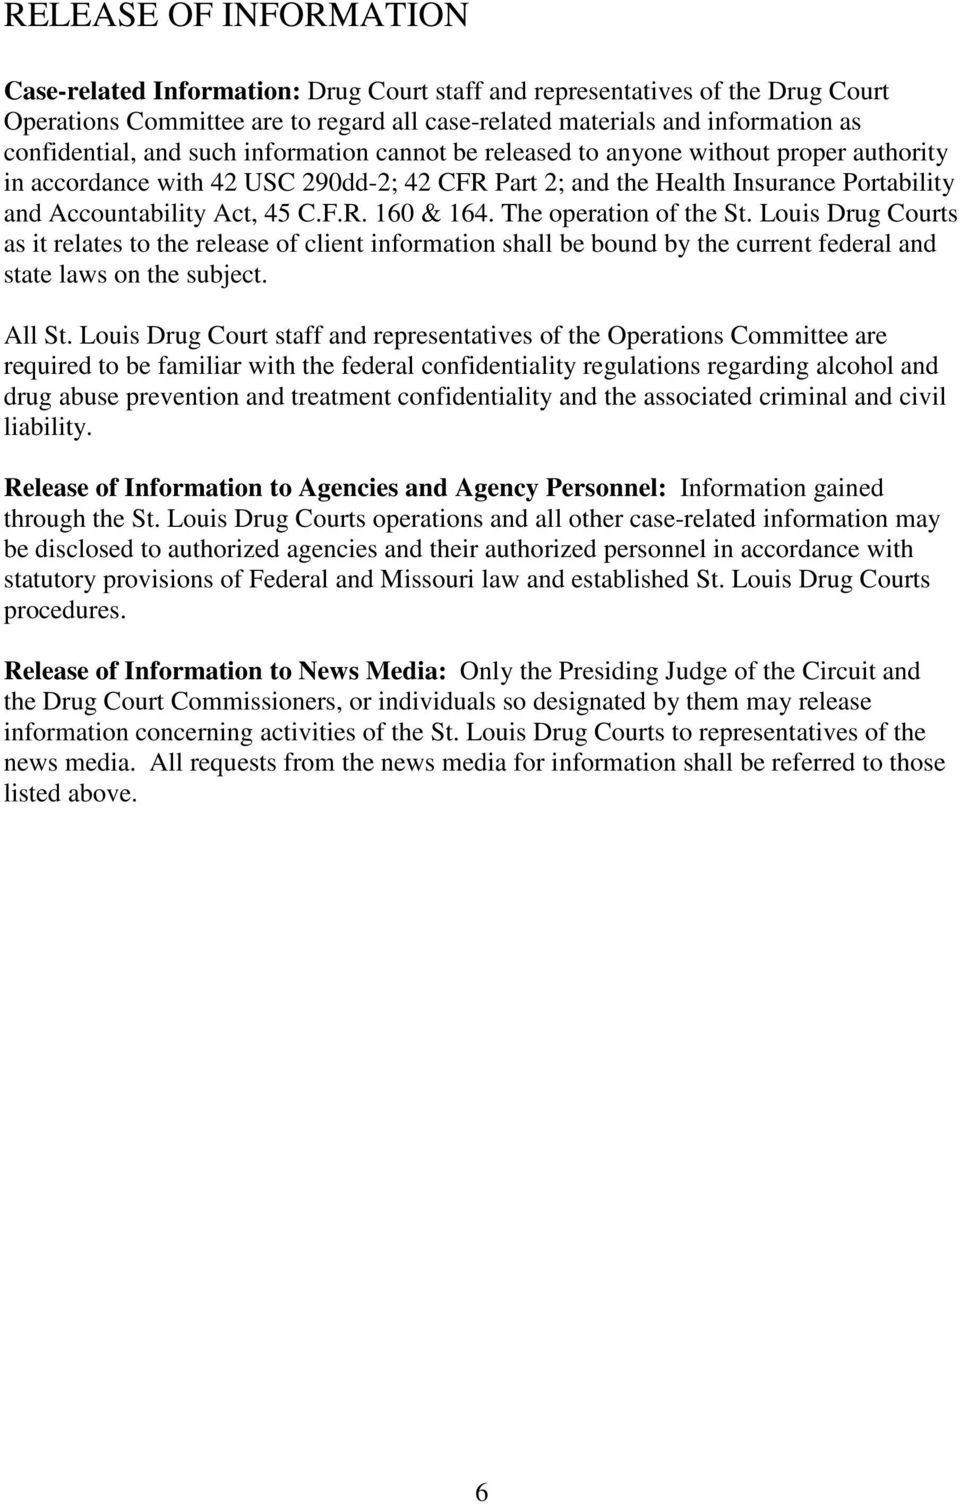 The operation of the St. Louis Drug Courts as it relates to the release of client information shall be bound by the current federal and state laws on the subject. All St.